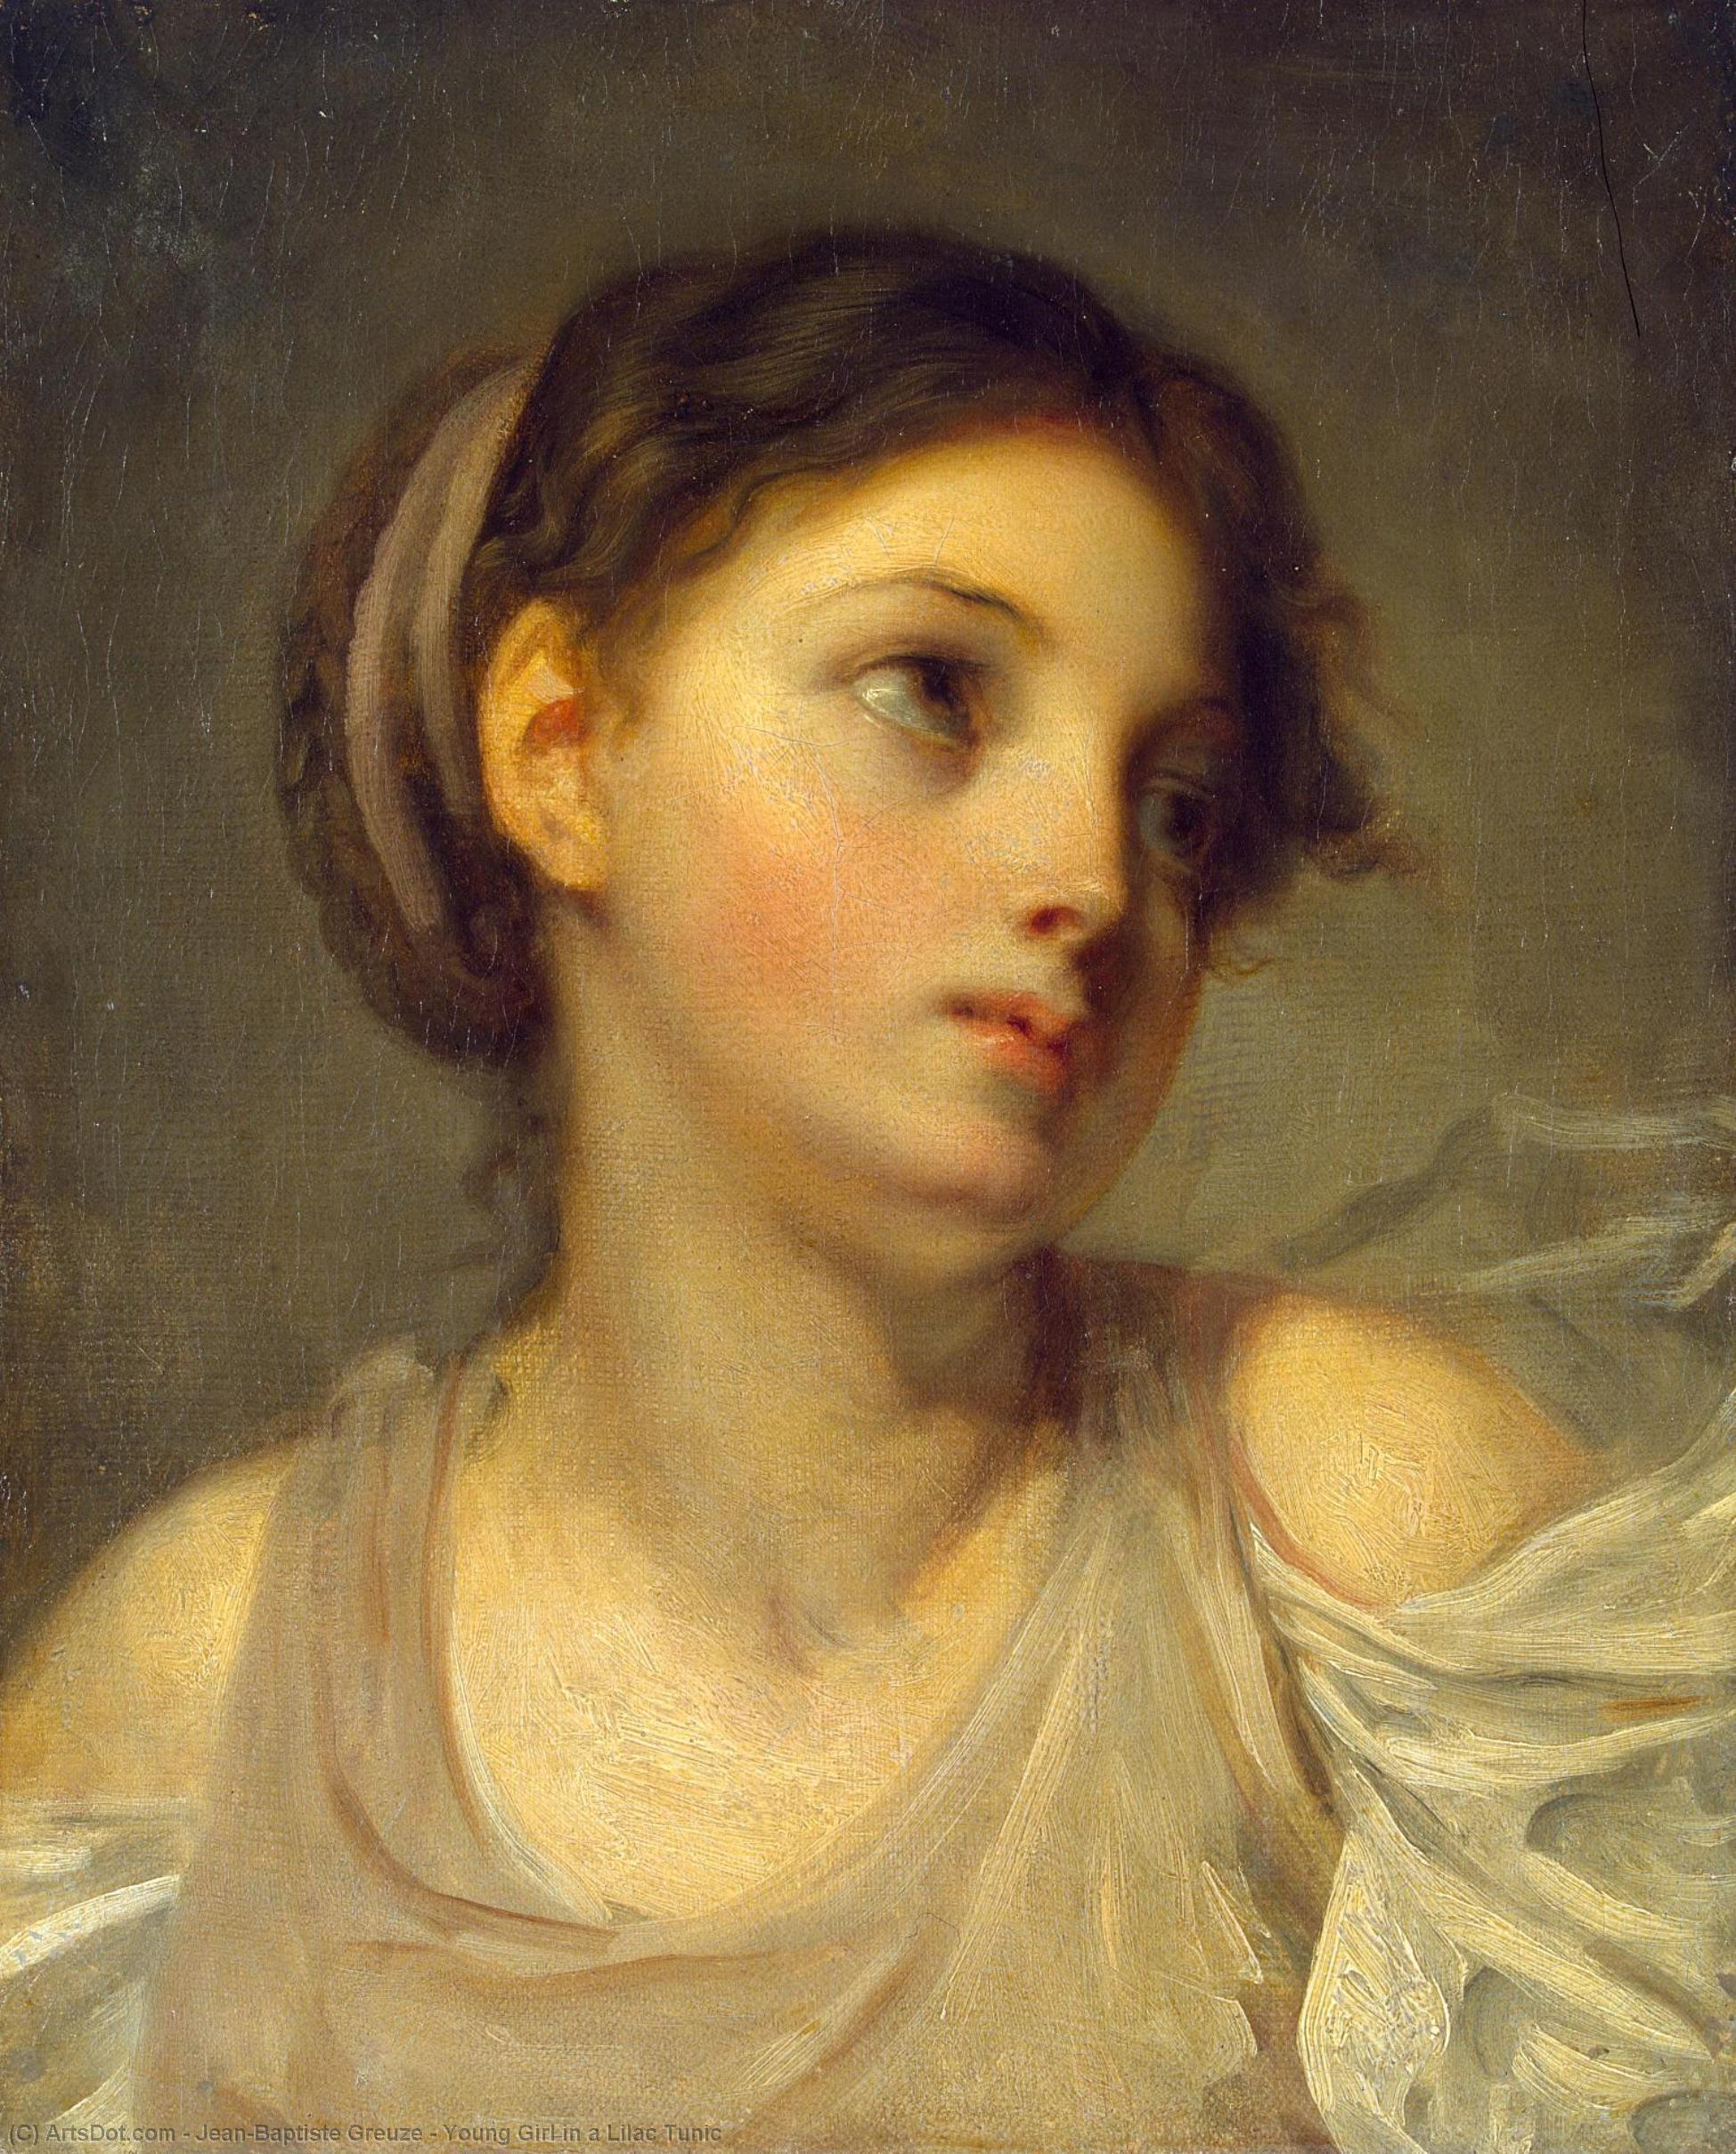 Young Girl in a Lilac Tunic, 1770 by Jean-Baptiste Greuze (1725-1805, France) | Art Reproductions Jean-Baptiste Greuze | ArtsDot.com